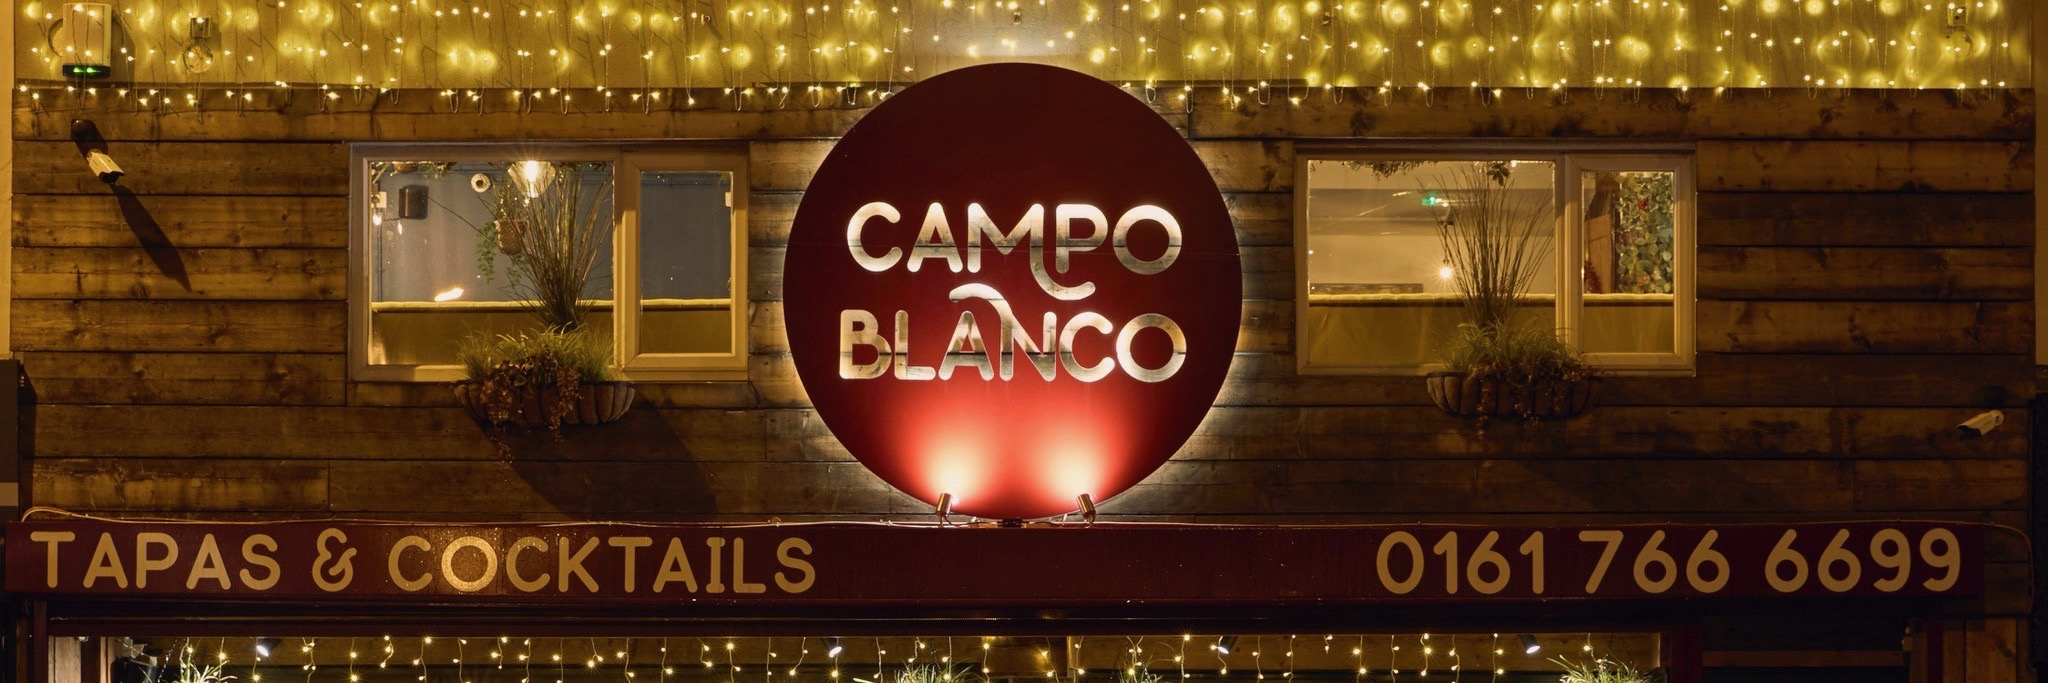 The exterior of Campo Blanco, a tapas bar in Whitefield, Bury, Greater Manchester